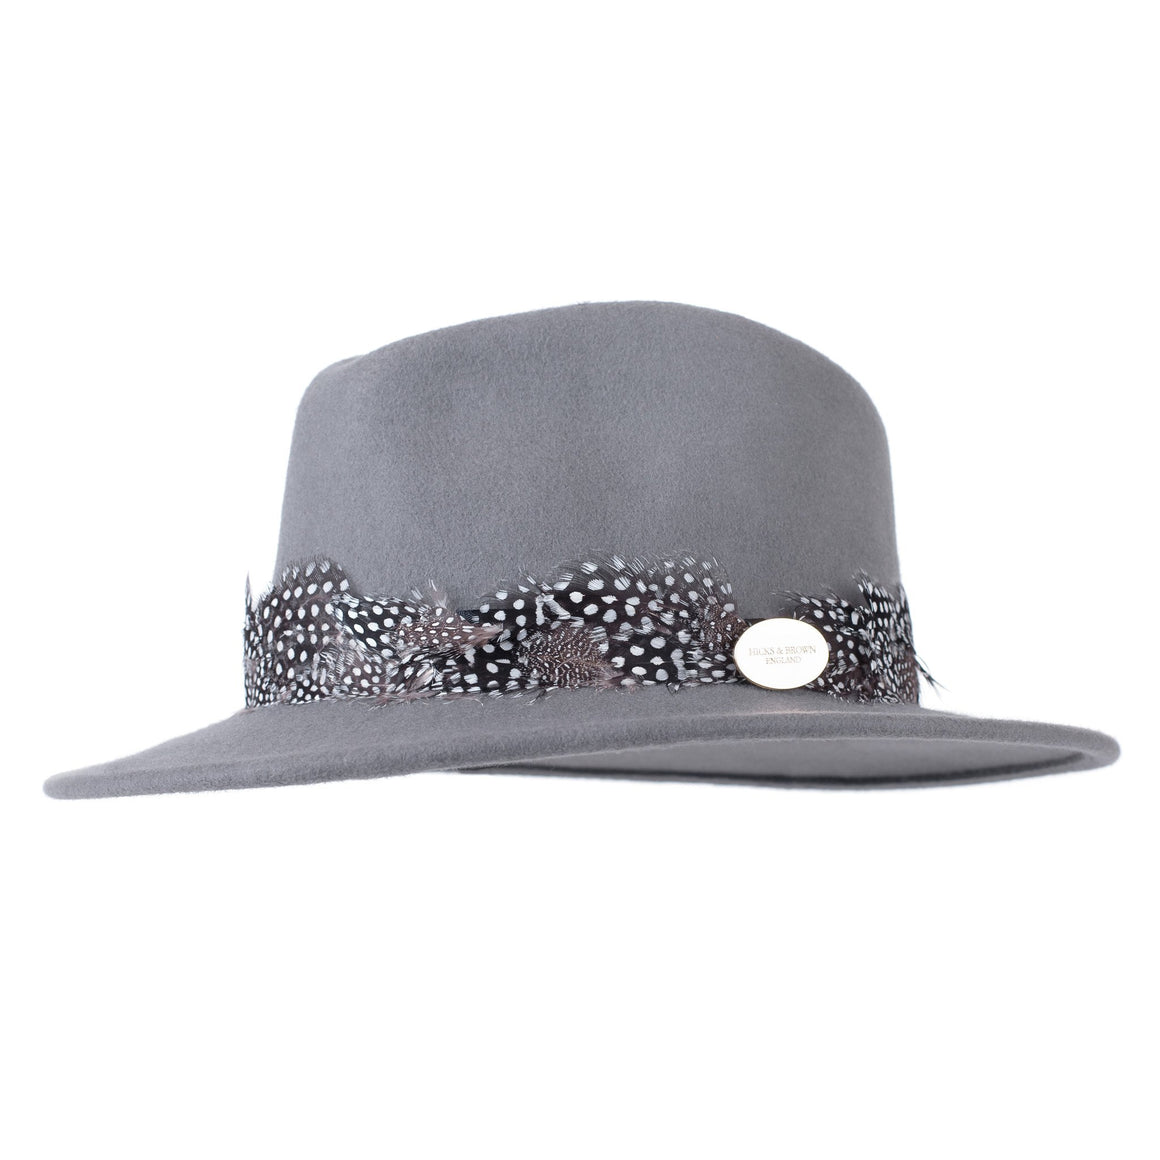 Hicks & Brown 'The Suffolk' Fedora in Grey (Guinea Feather Wrap)